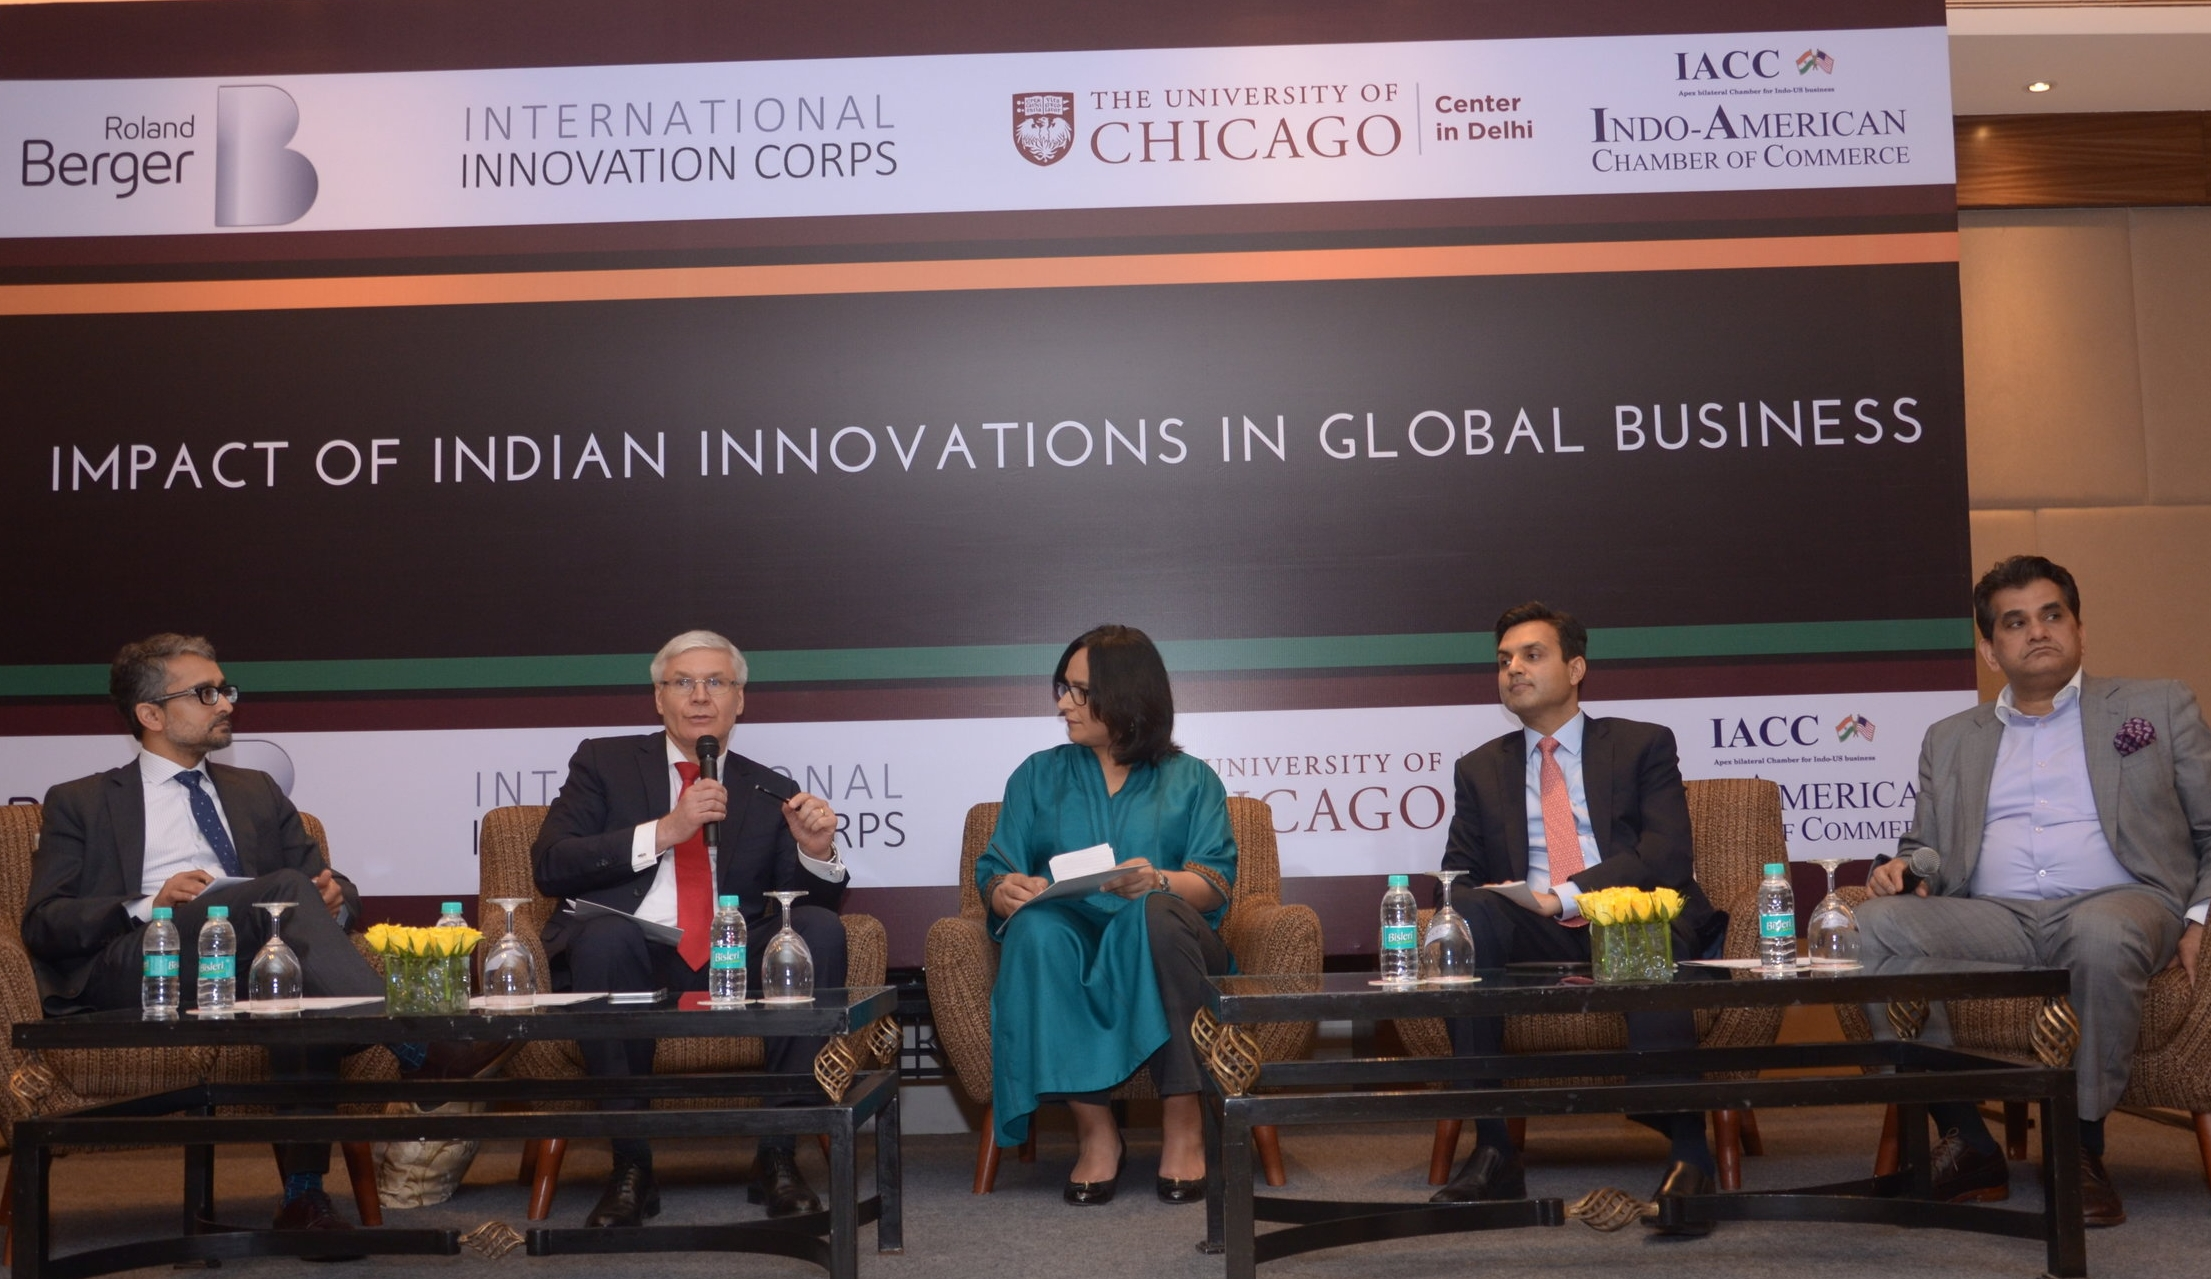 Impact of Indian Innovations in Global Business